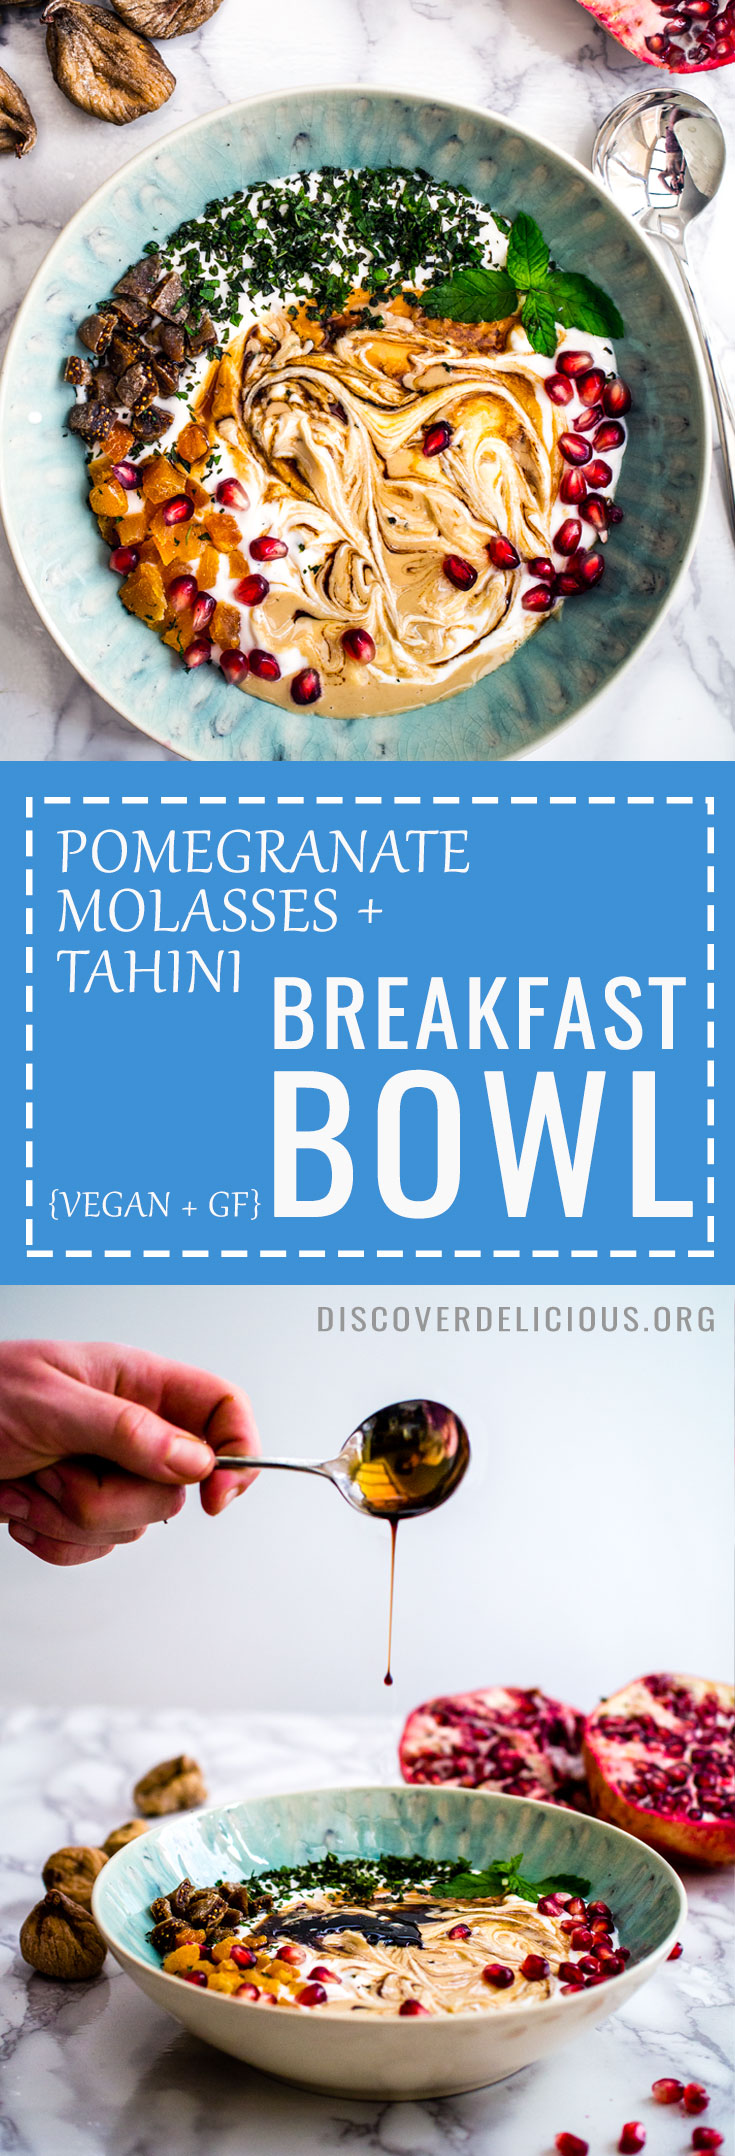 This pomegranate molasses and tahini breakfast bowl is a delicious,different and healthy start to your day! Vegan + Gluten Free! | Discover Delicious | www.discoverdelicious.org |  #moroccan #recipe #recipes #glutenfree #dairyfree #fruit #vegan